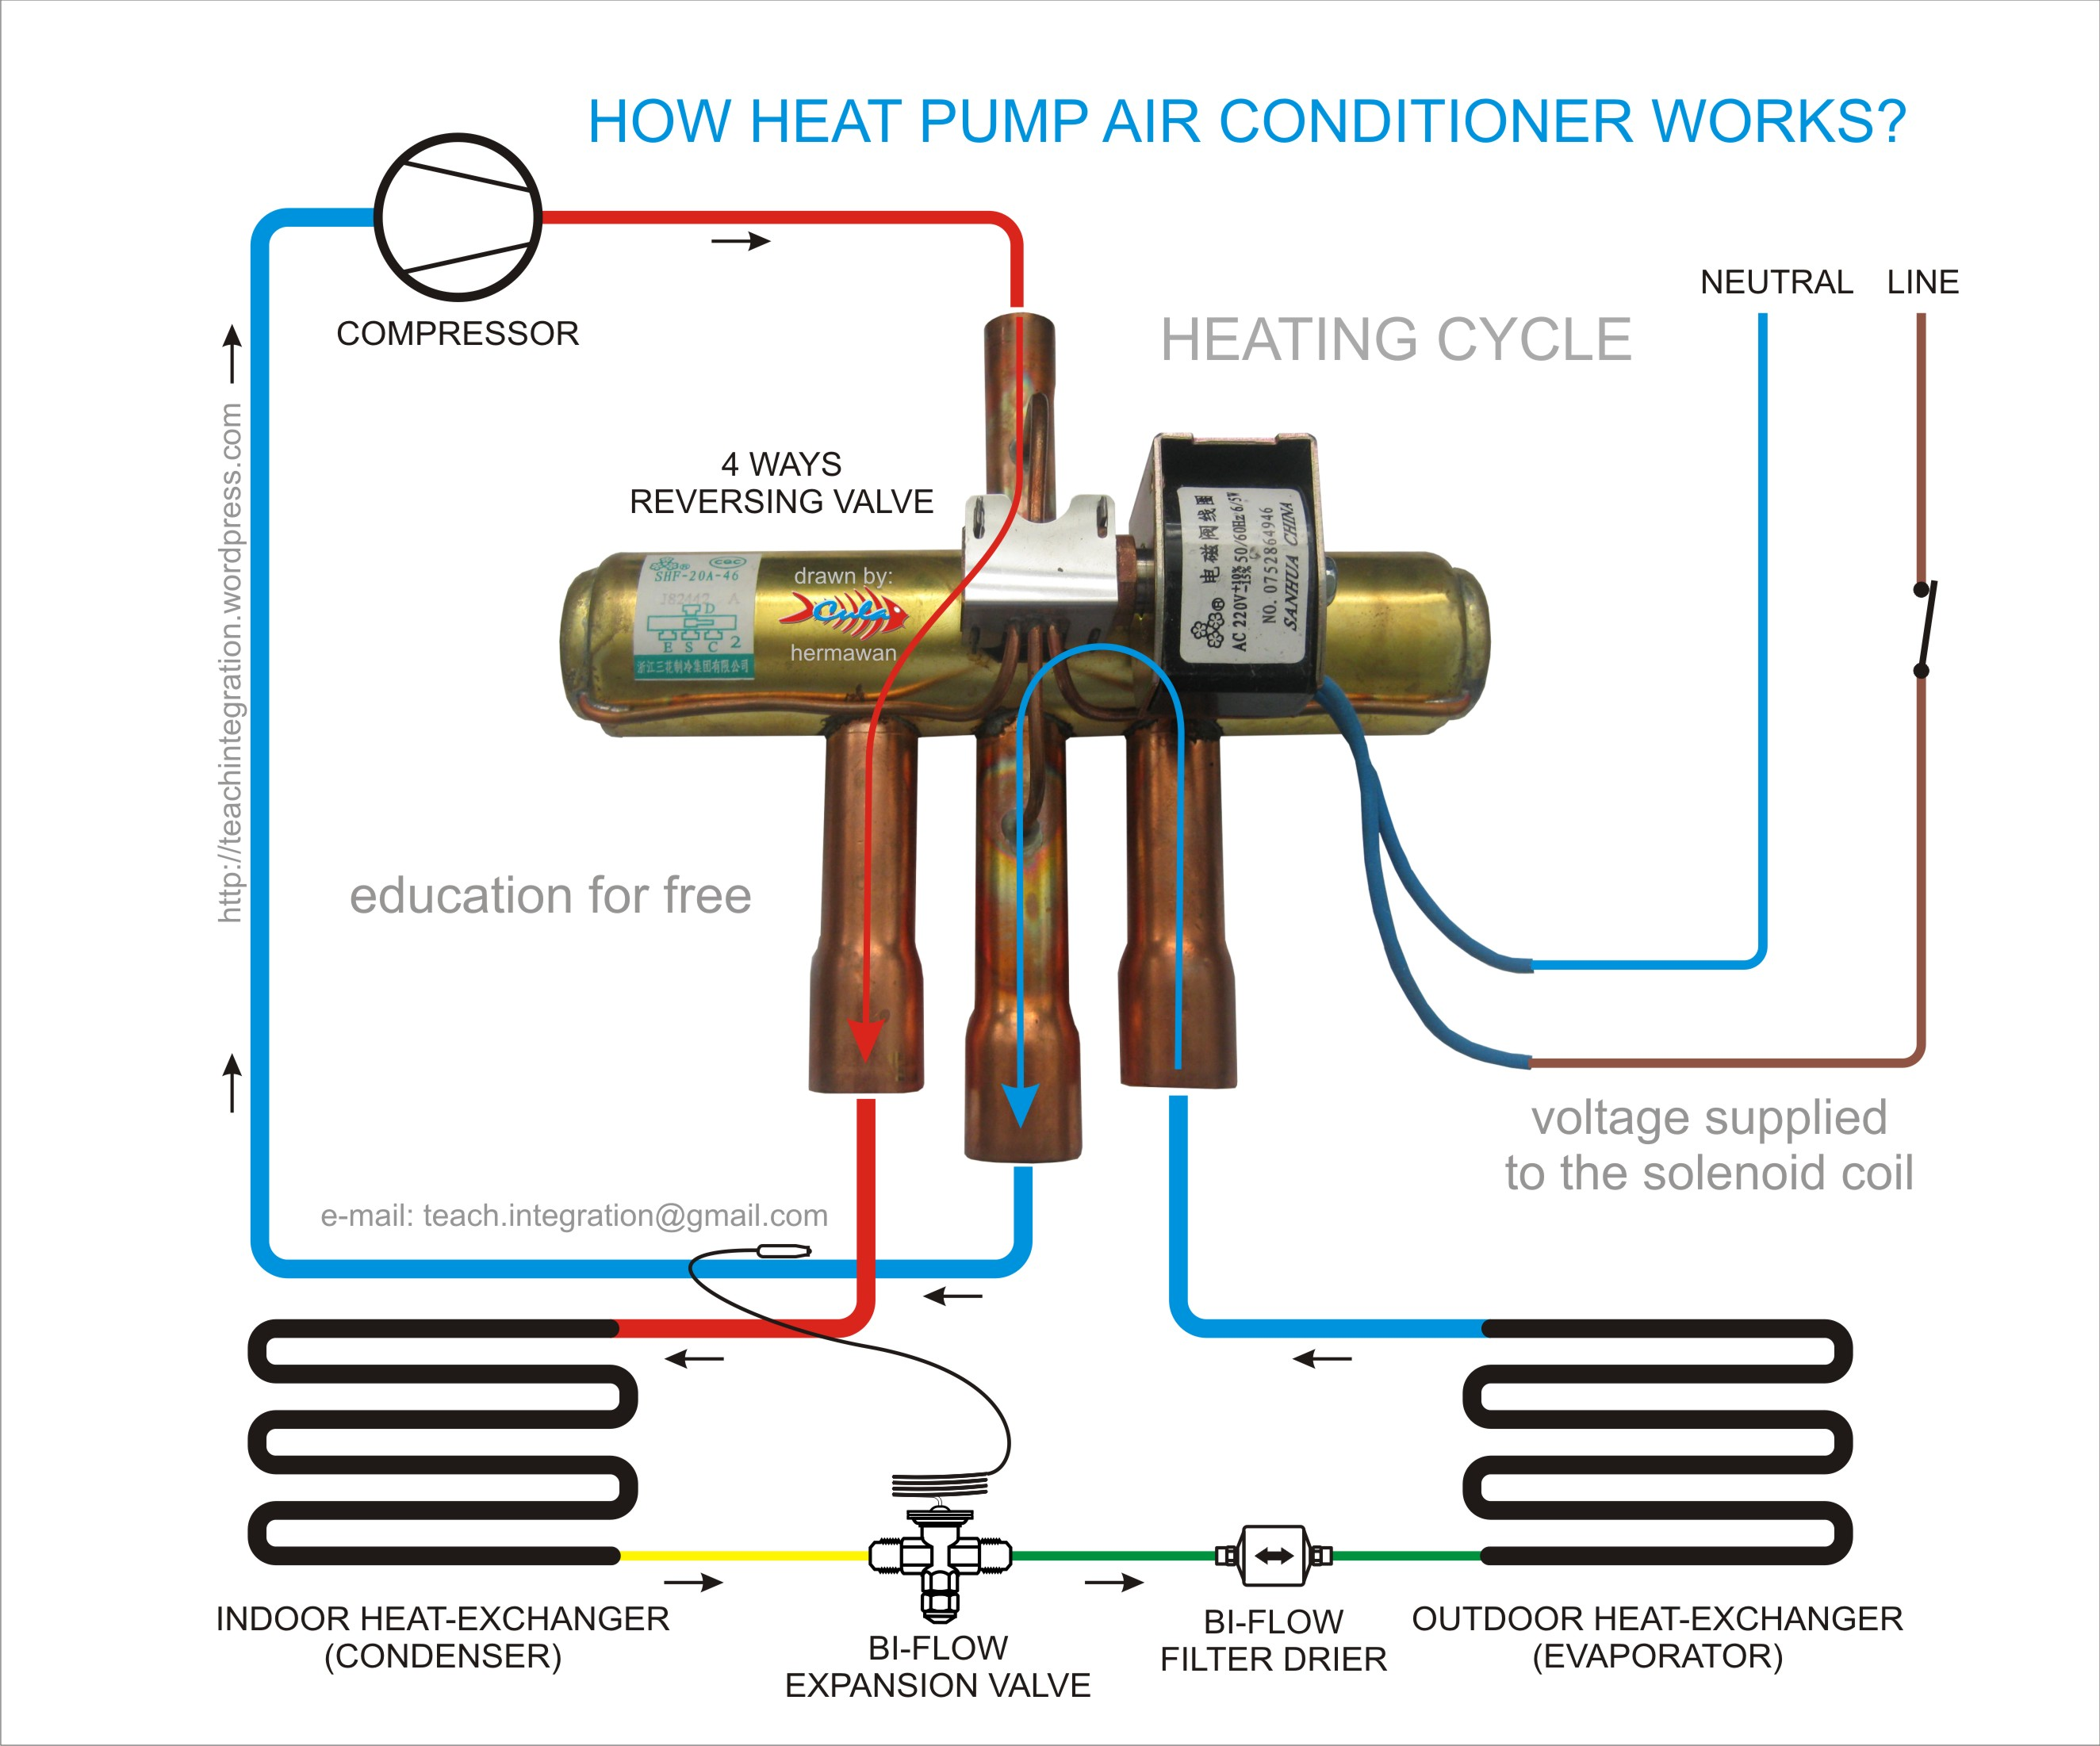 vapor compression refrigeration cycle pv diagram ceiling fan 3 way switch wiring pt